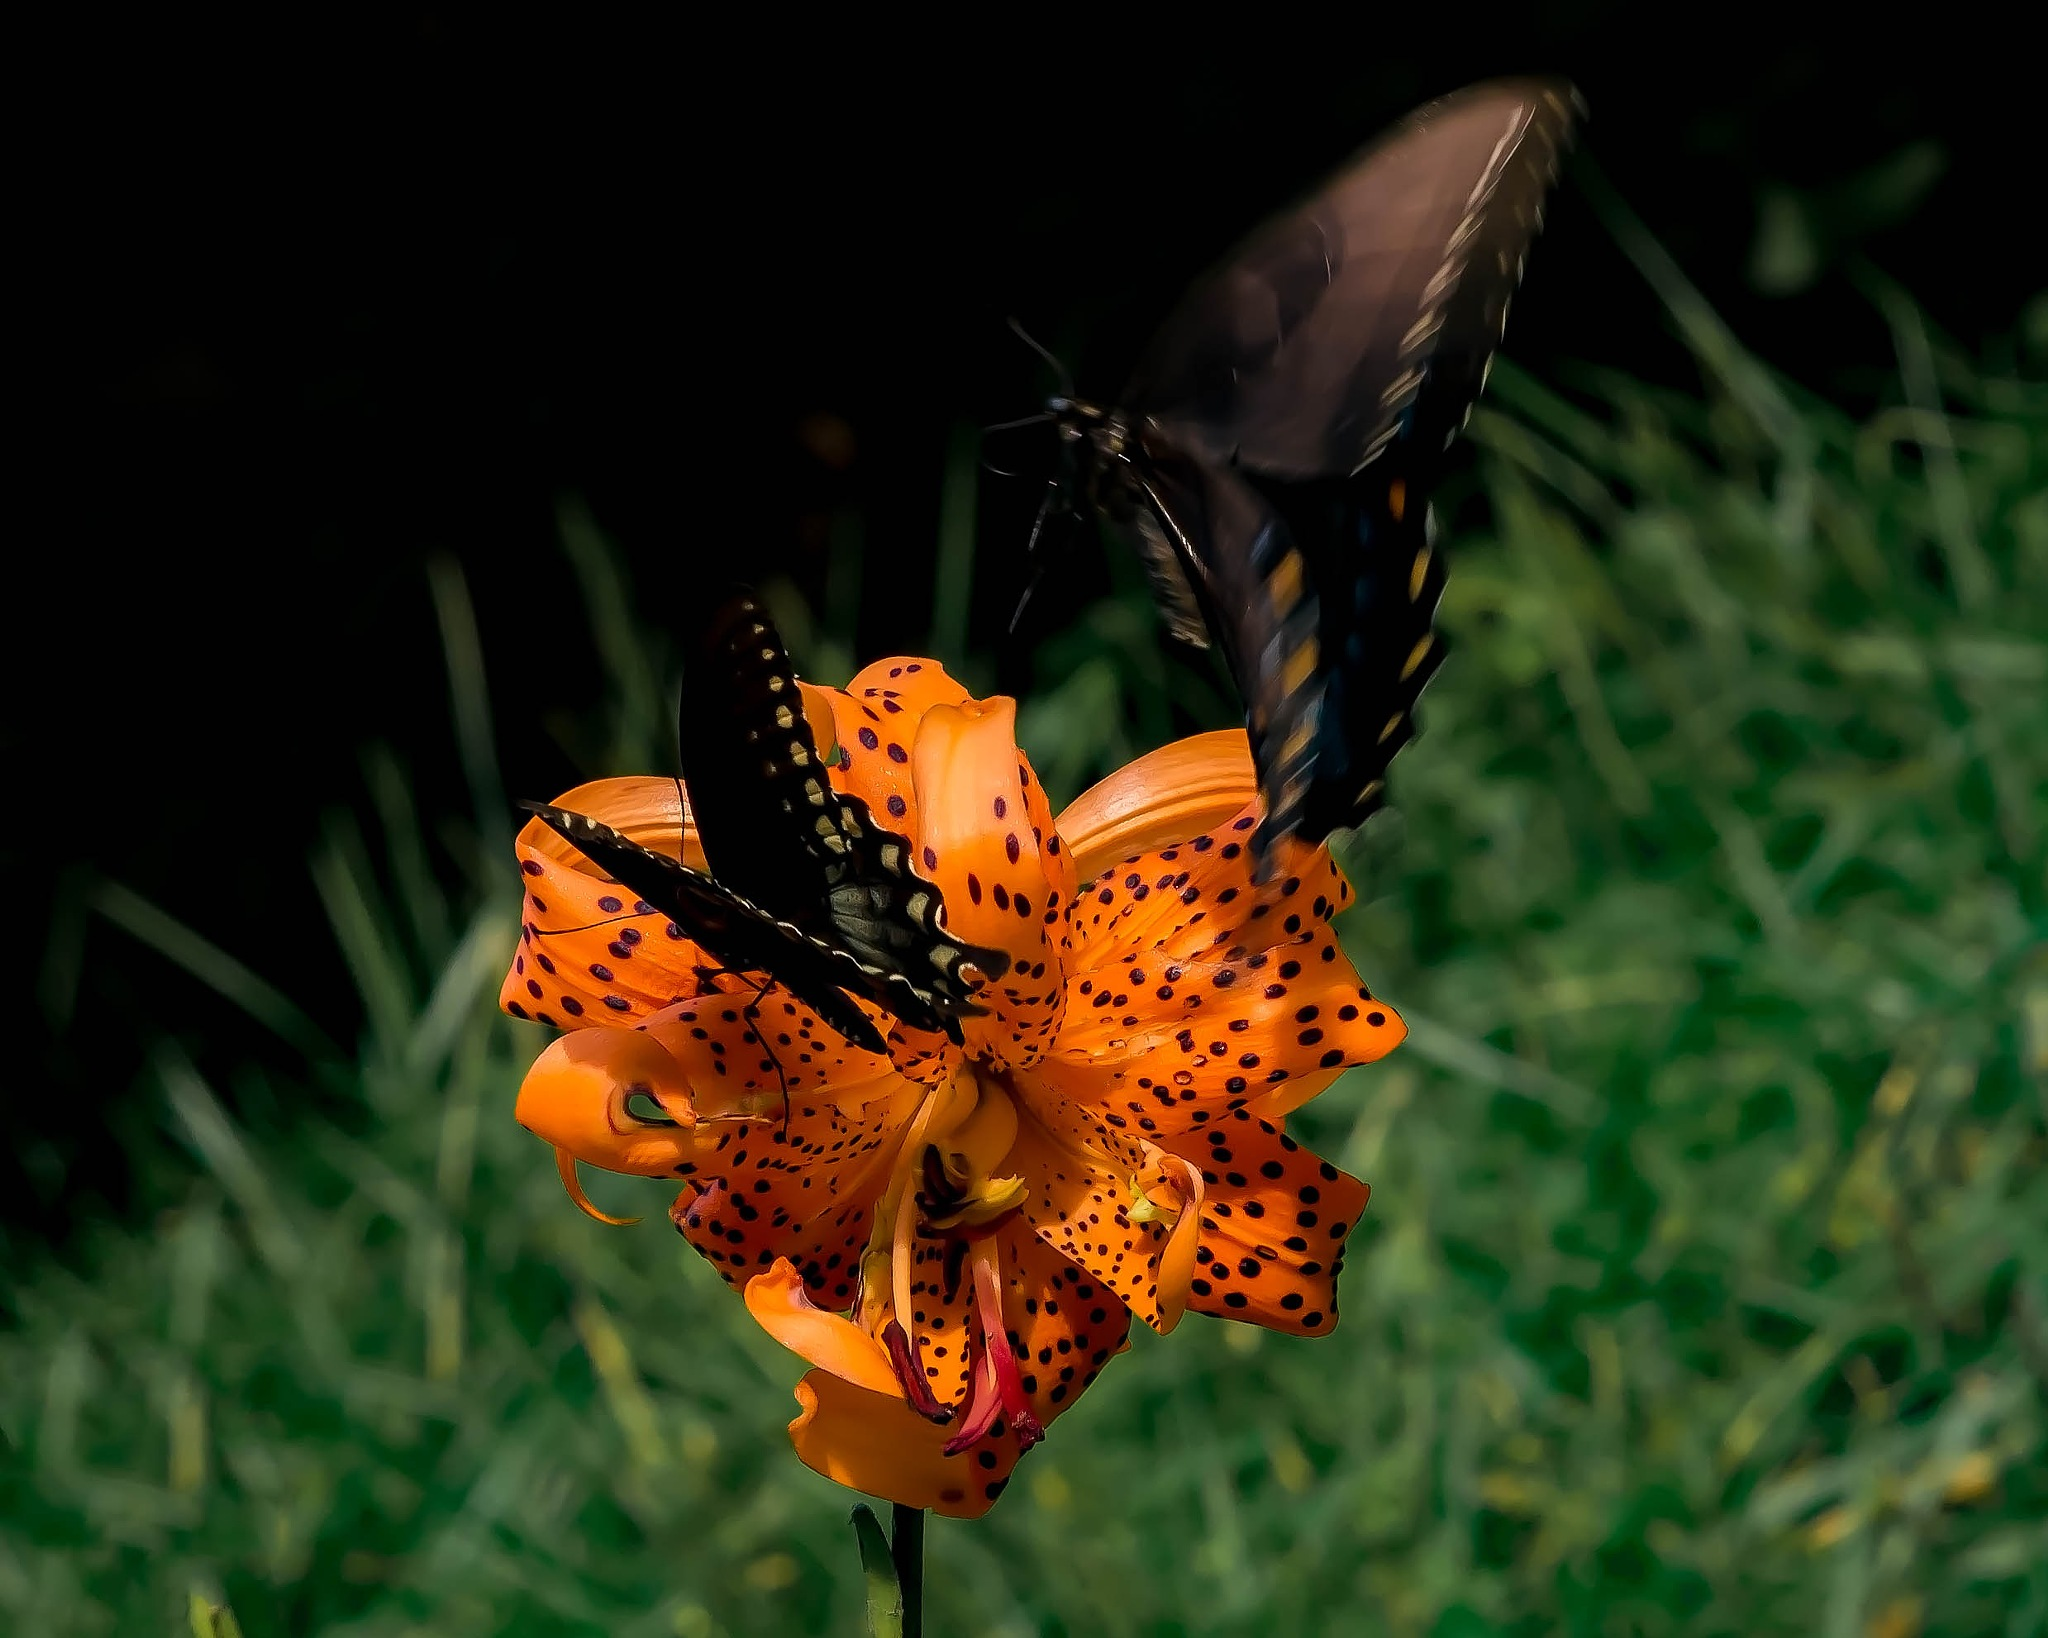 Gathering Swallowtails by Edward Brown